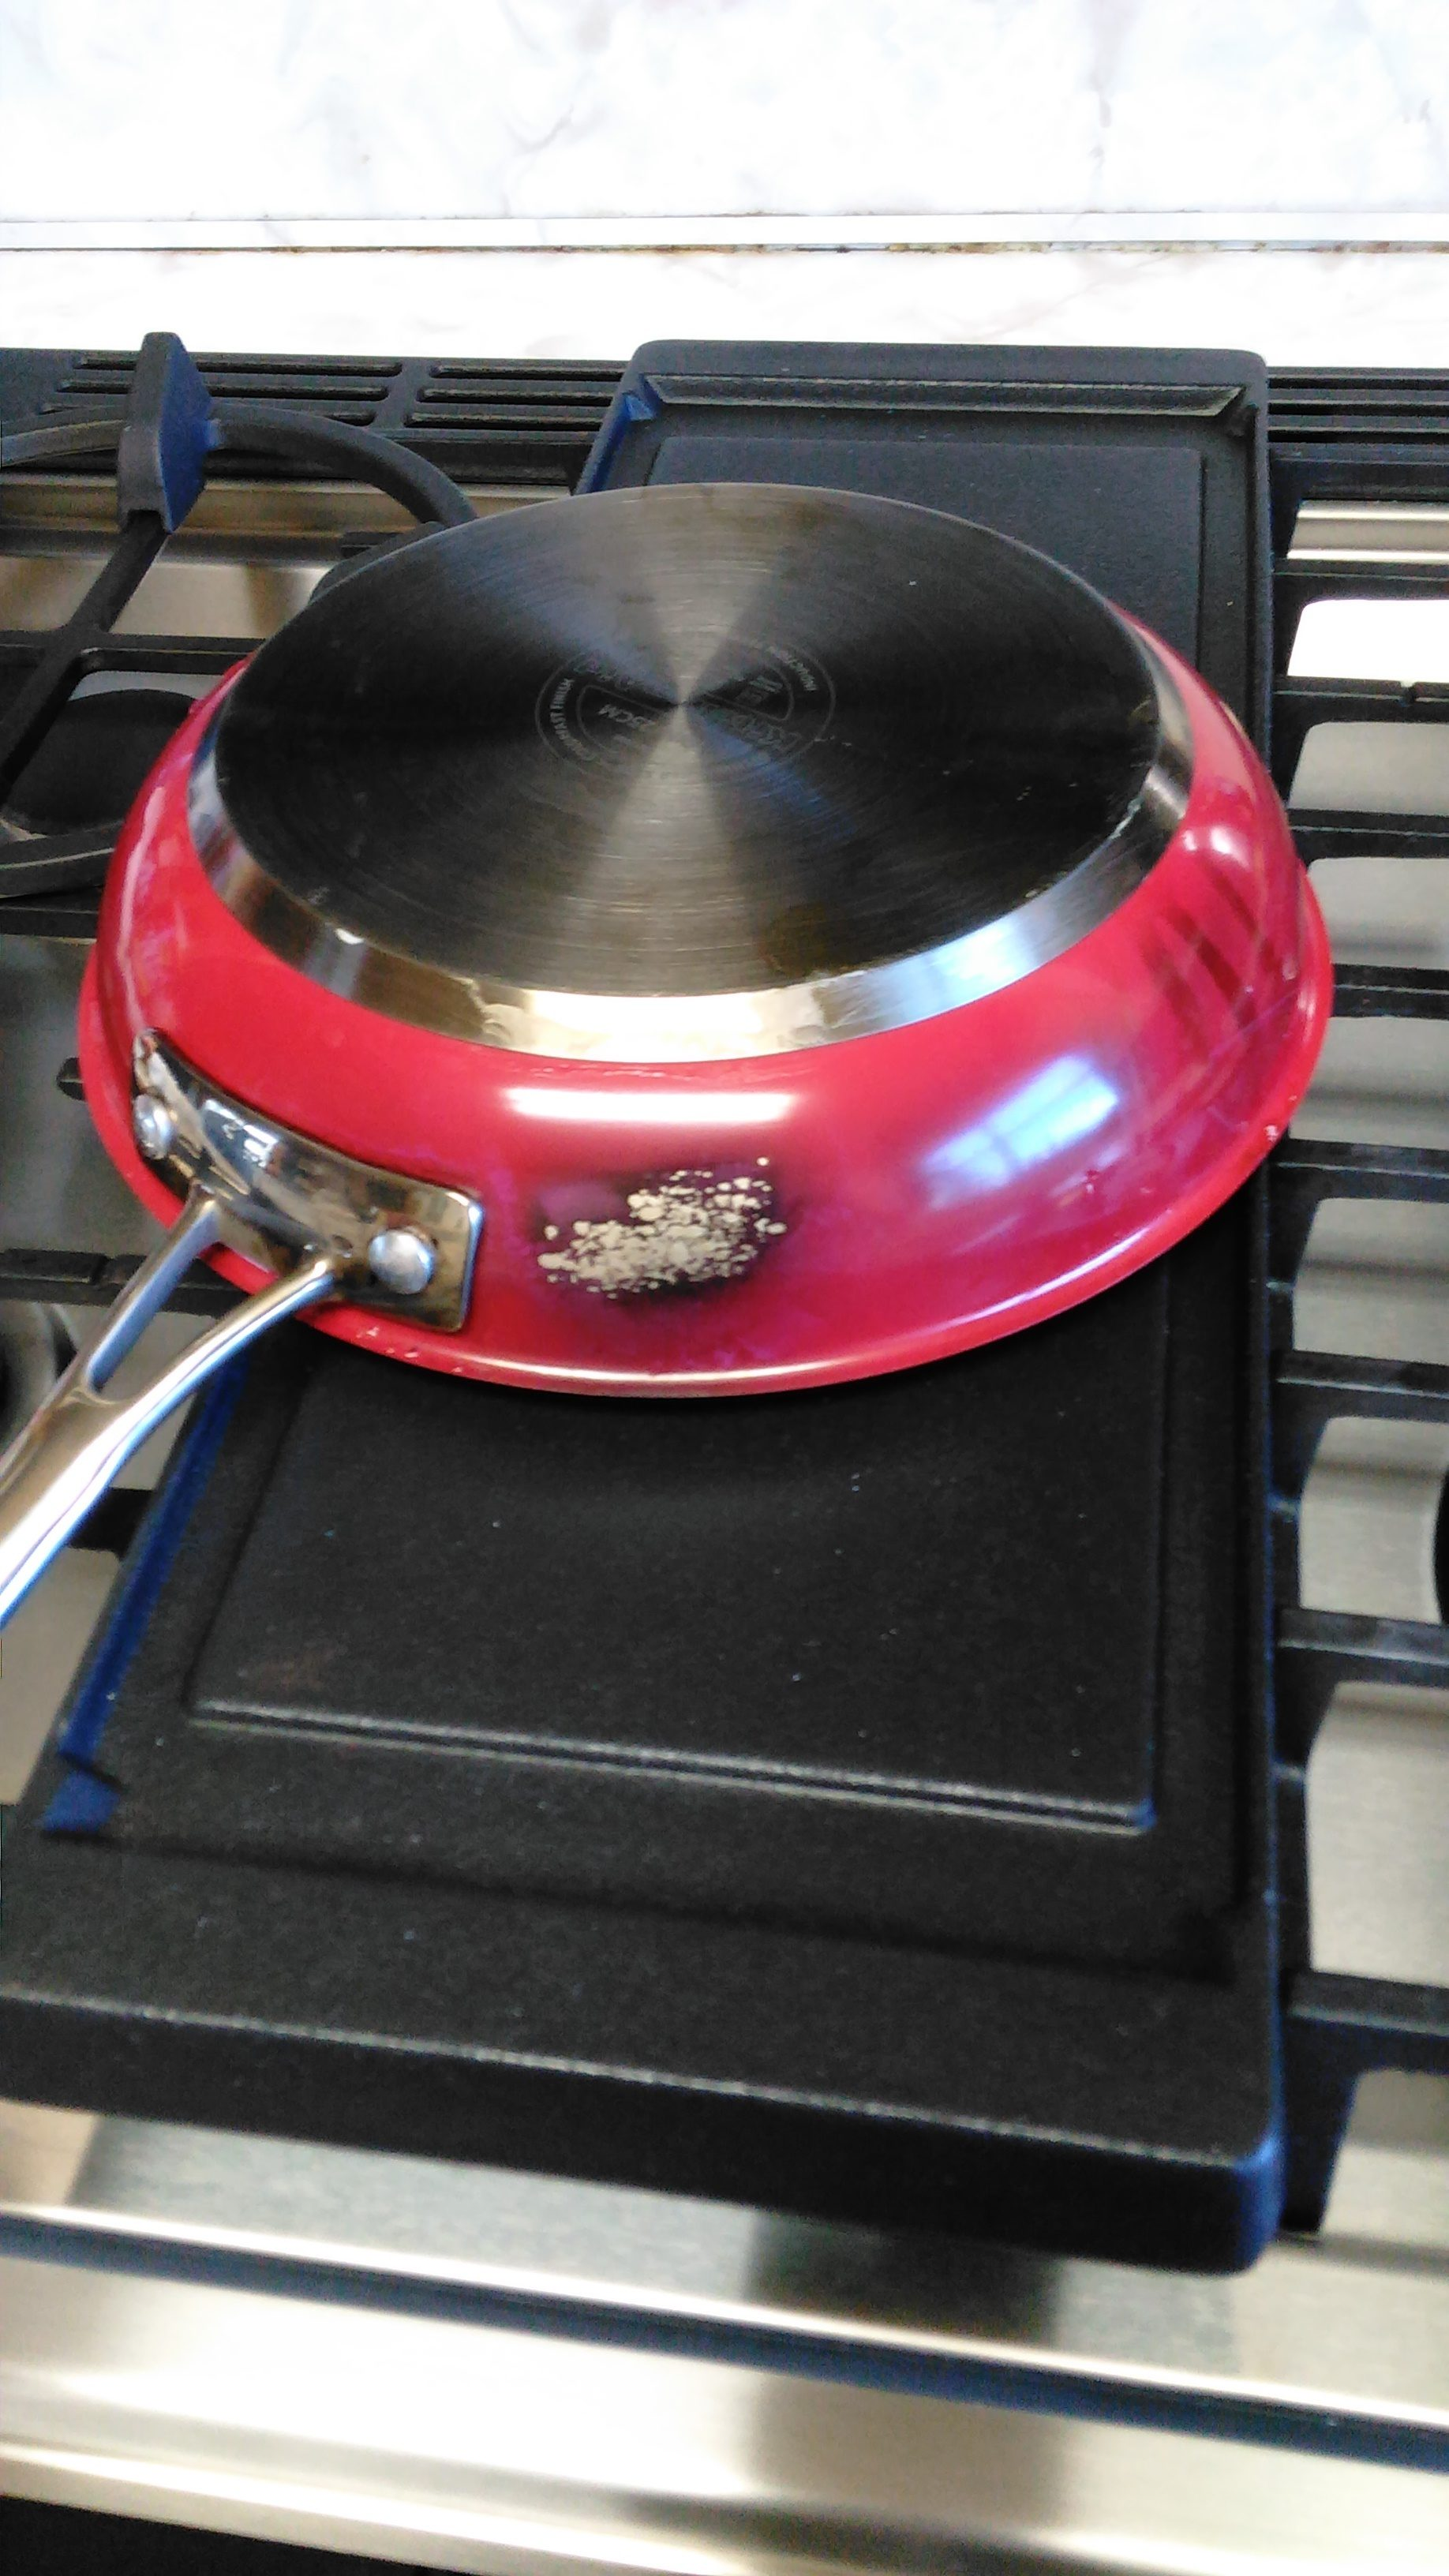 Top 29 Reviews and Complaints about KitchenAid Cookware